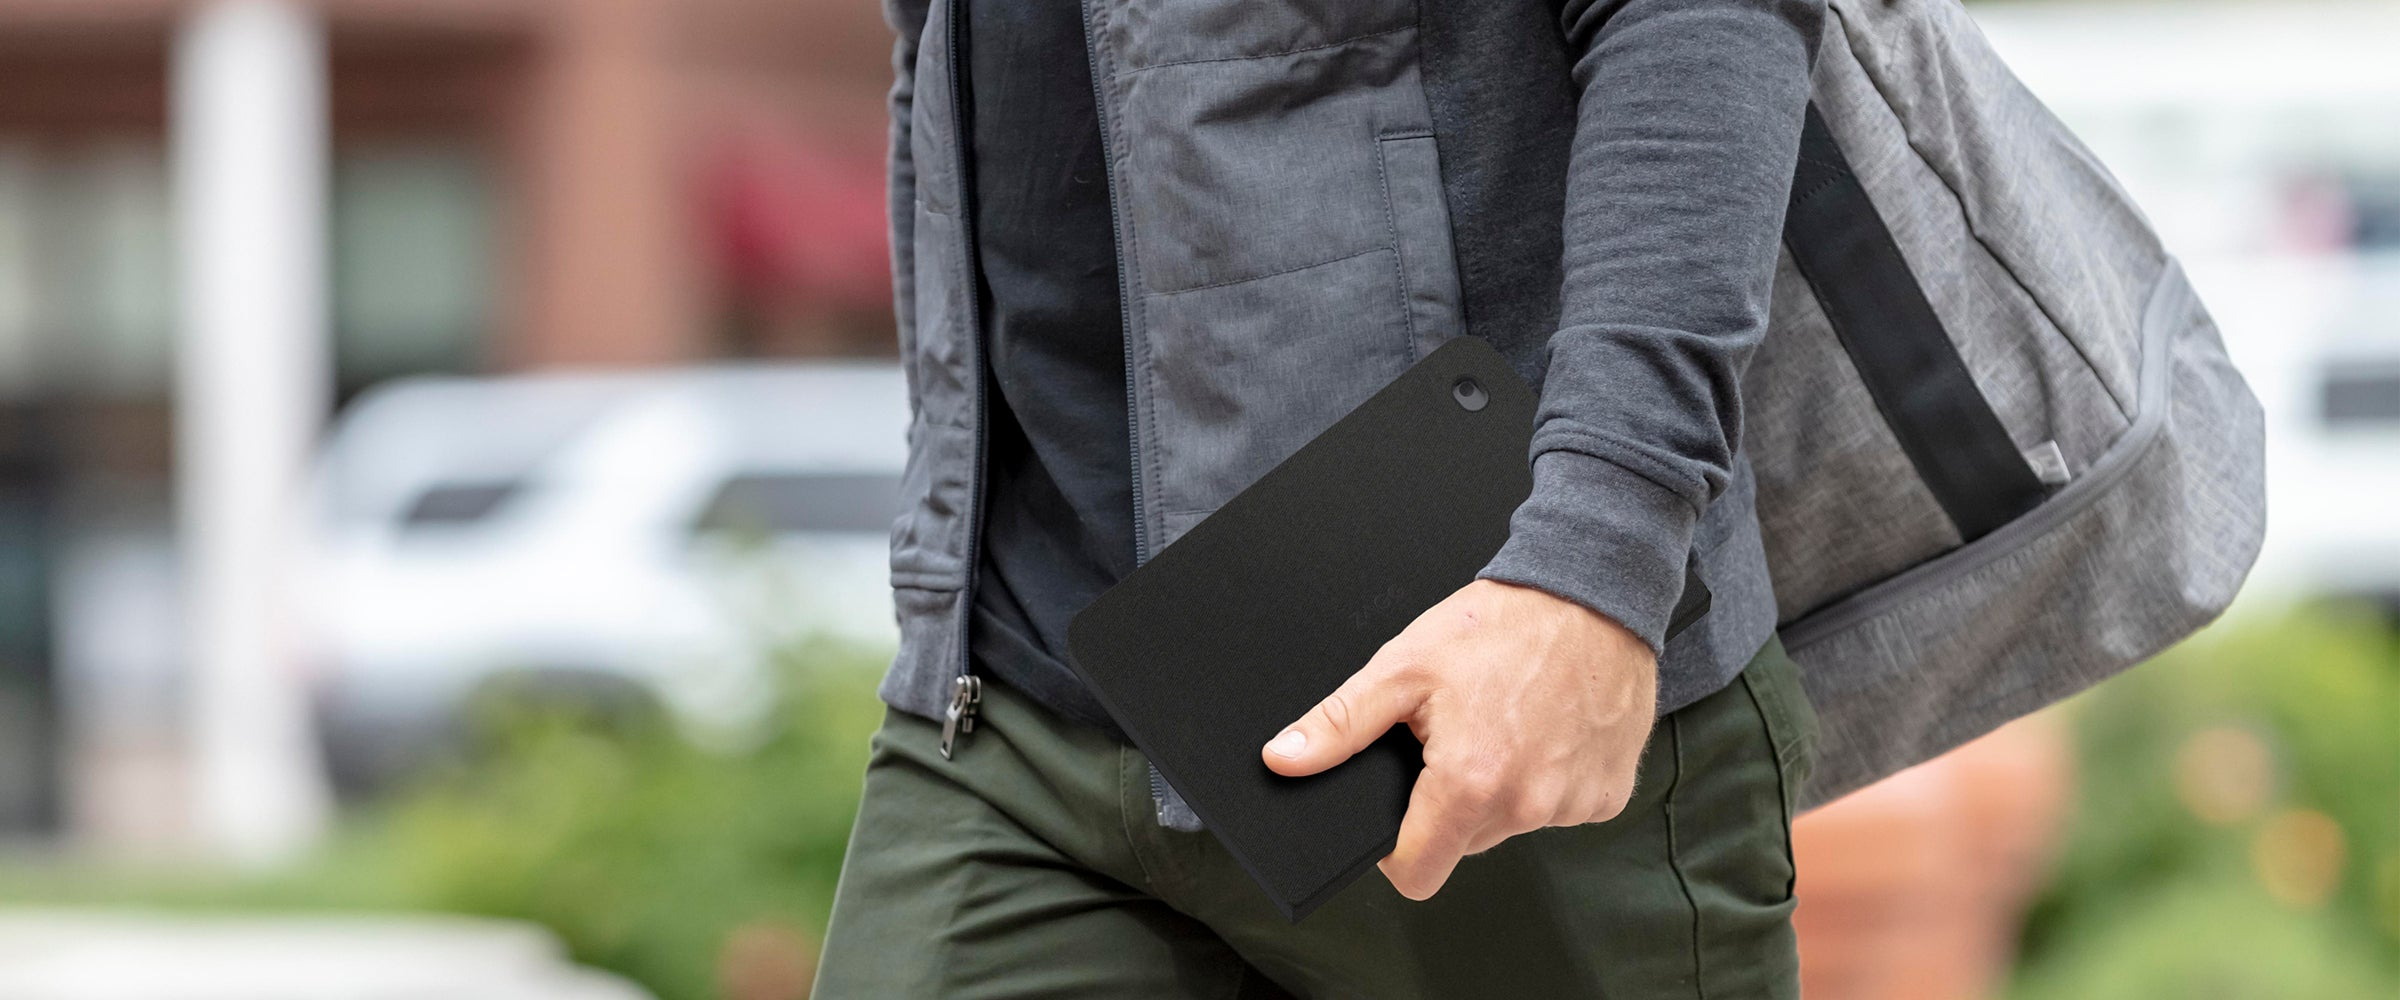 Man walking with an ipad in a messenger folio case